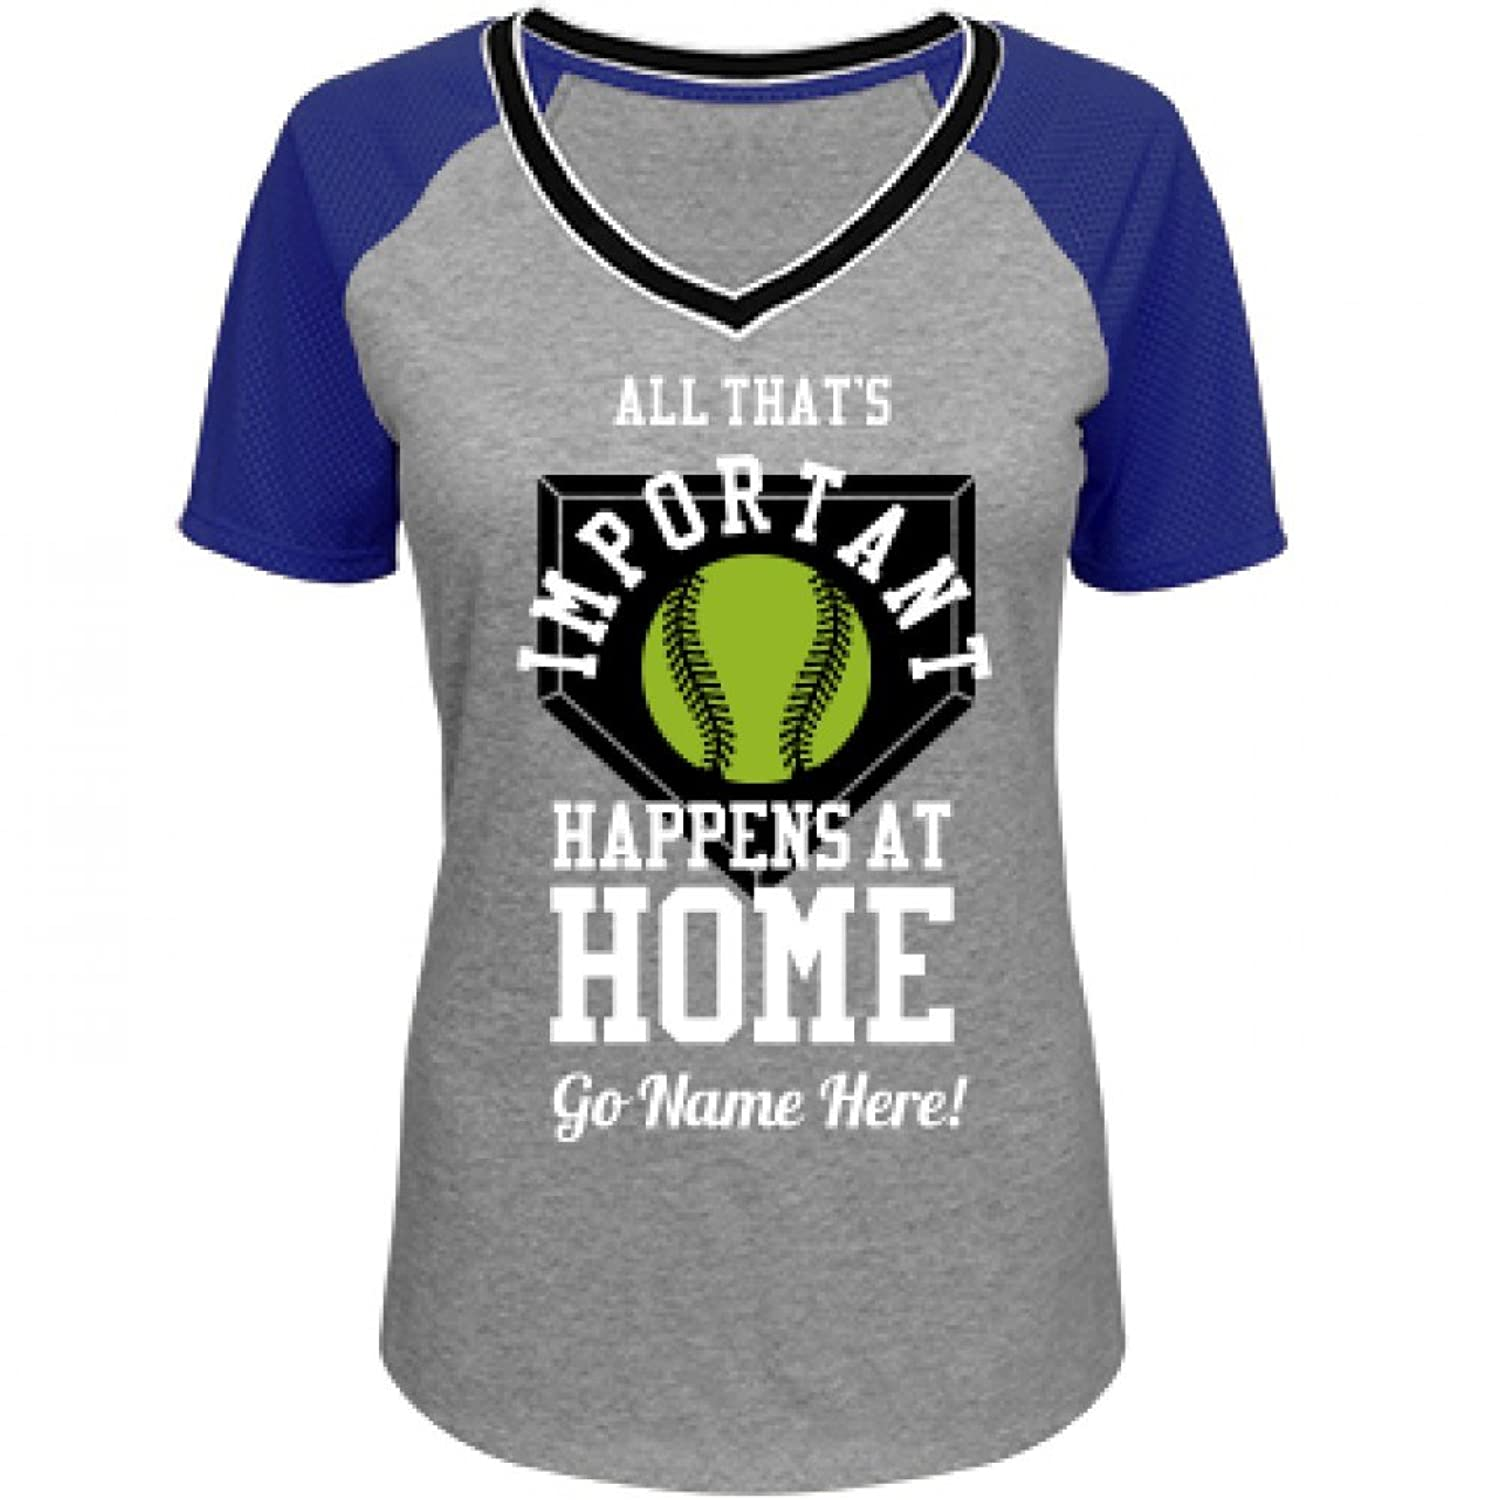 It Happens At Home Base Custom: Junior Fit District Mesh Sleeve V-Neck Tee